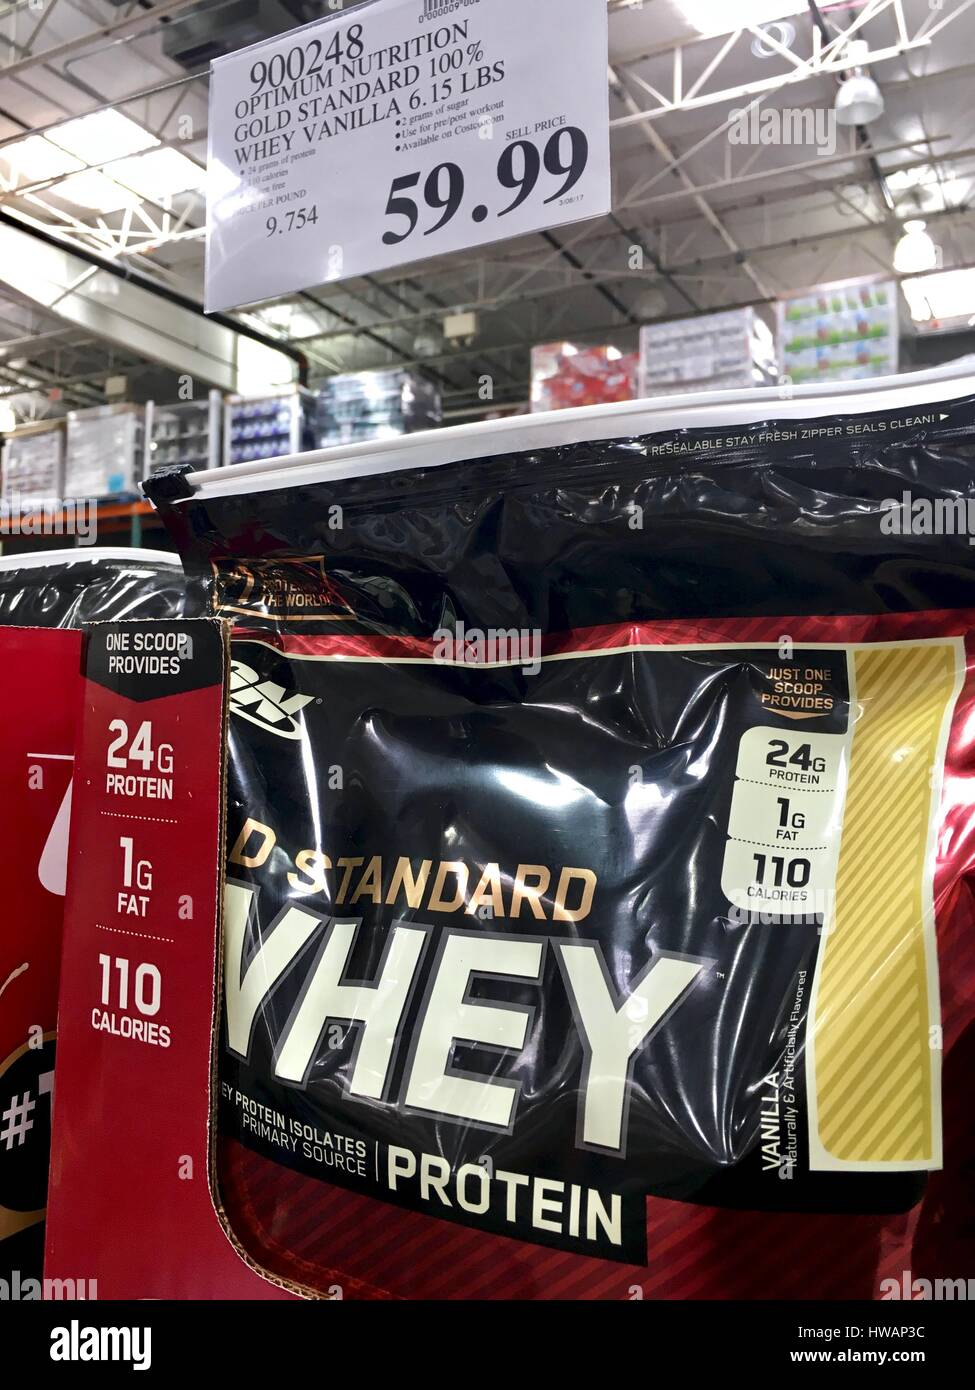 100 Whey Protein For Sale At Costco Stock Photo 136075840 Alamy